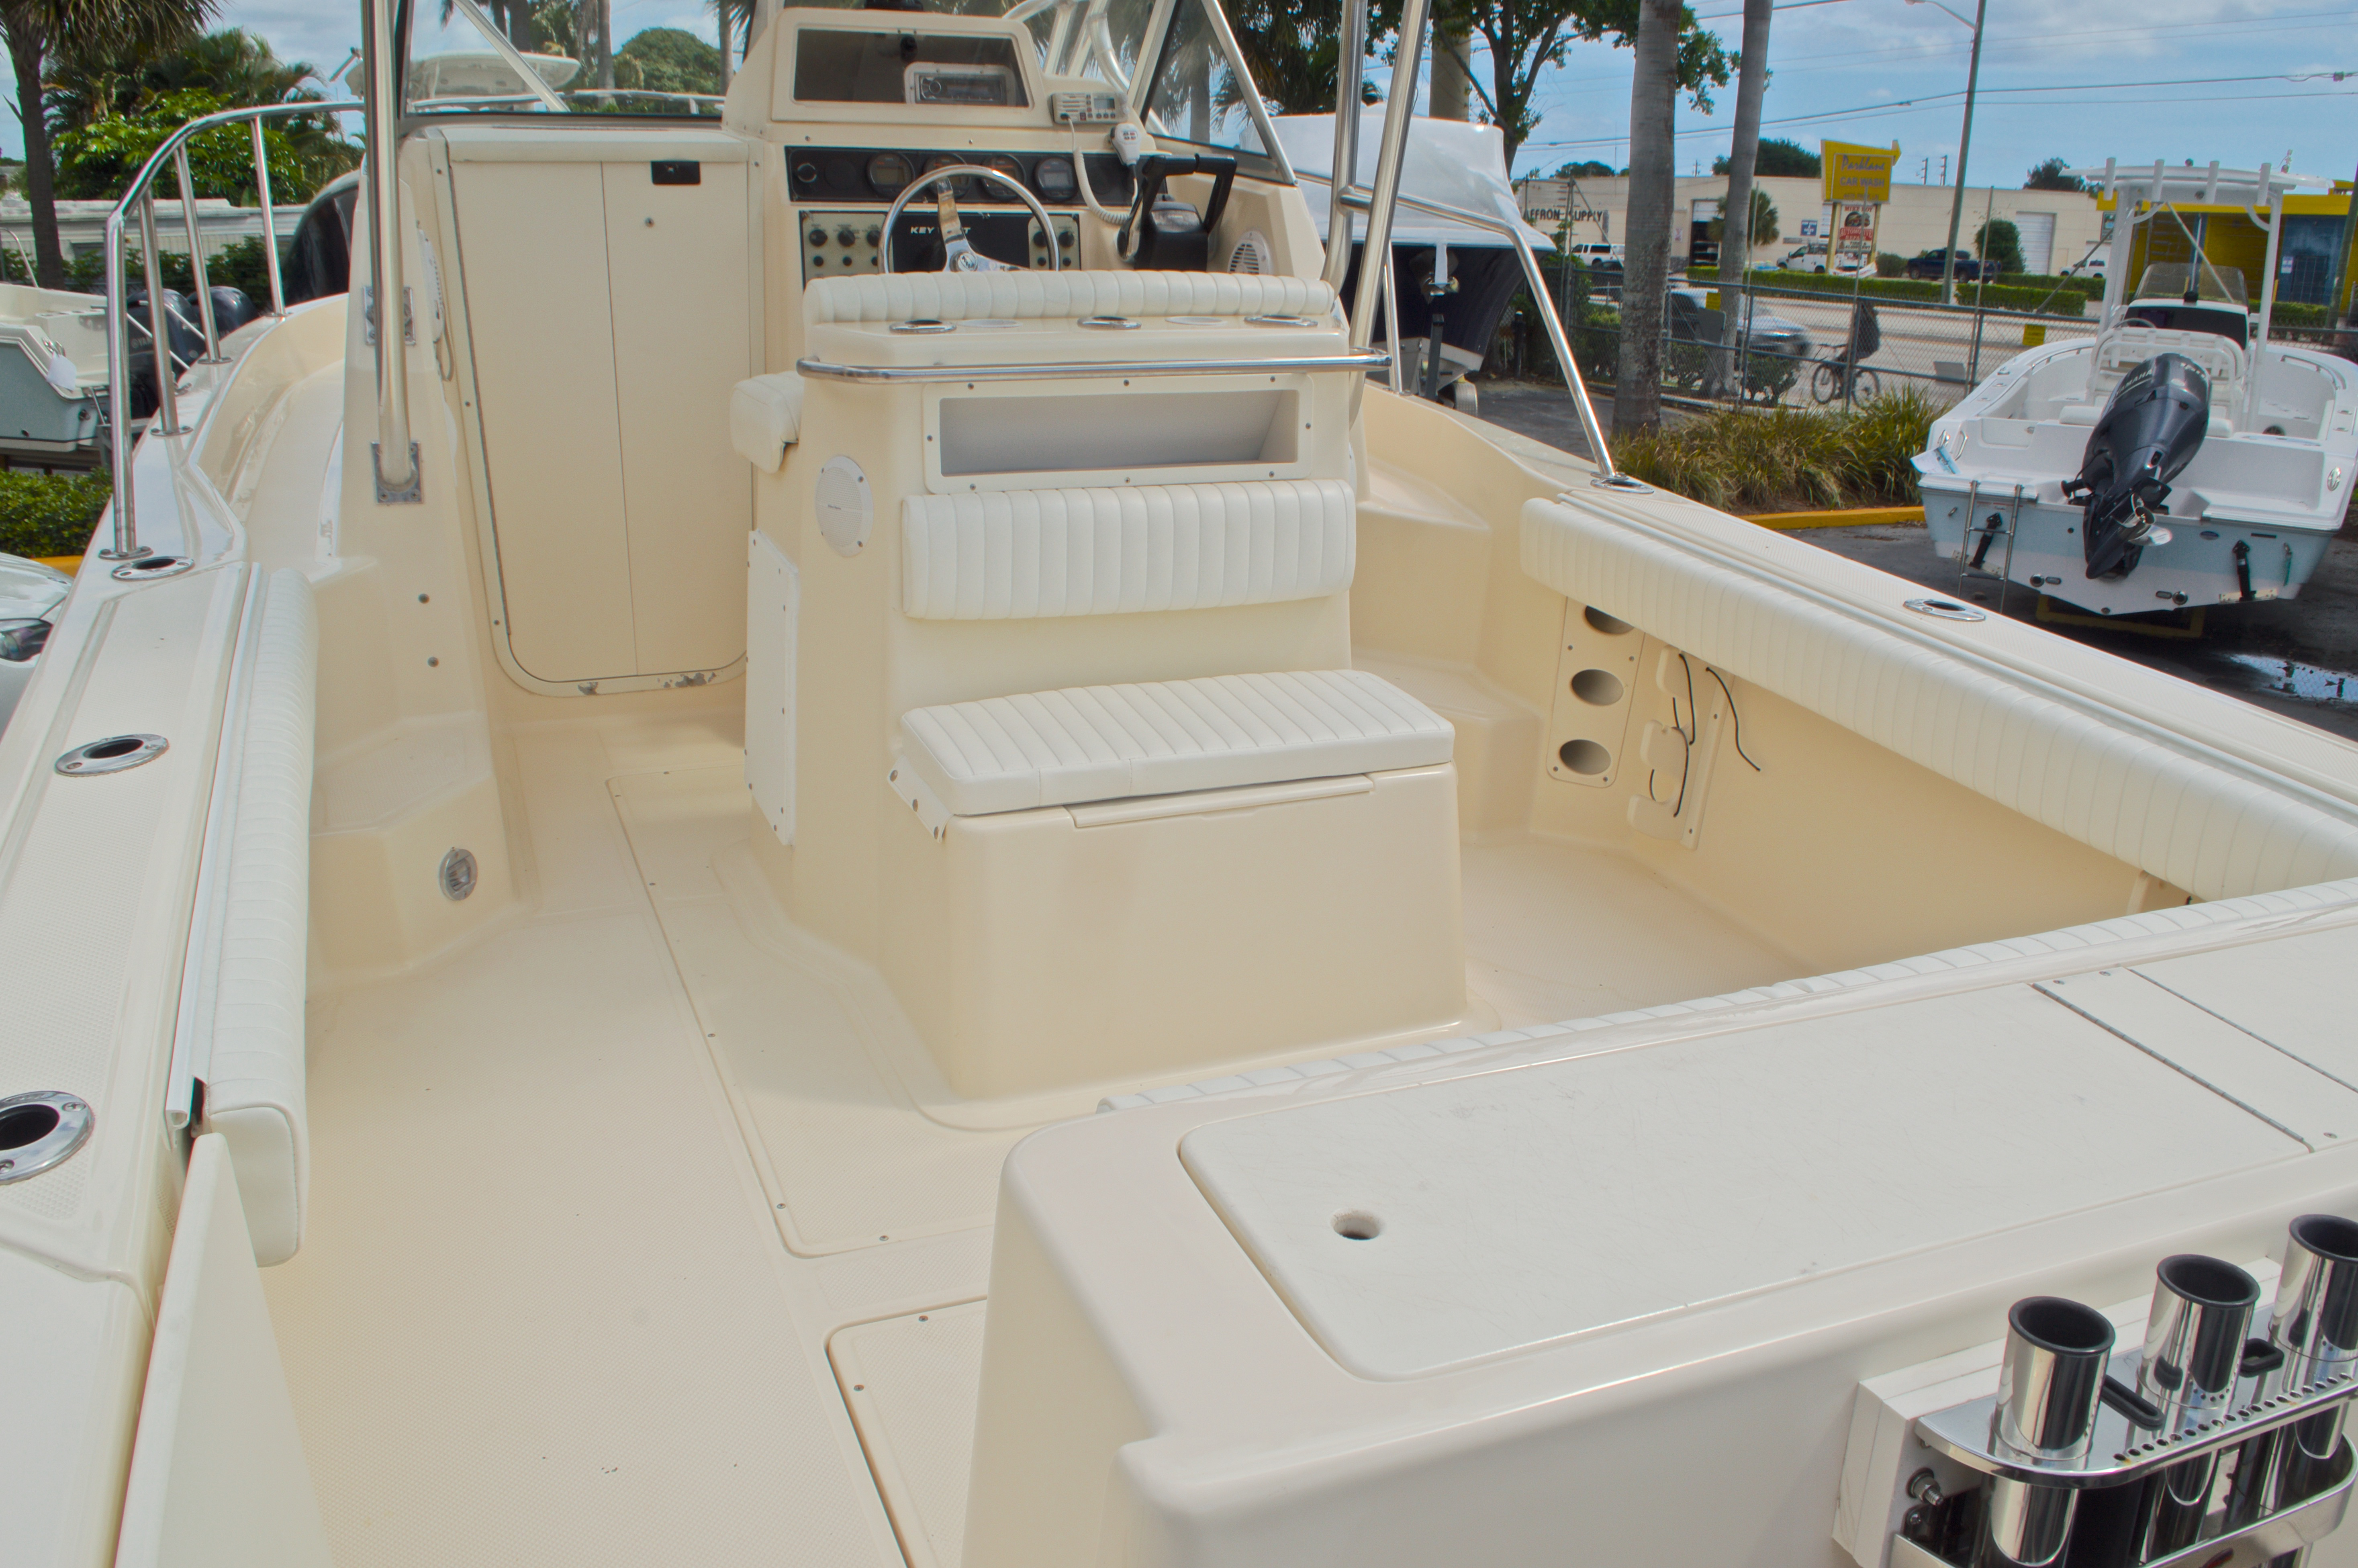 Thumbnail 15 for Used 2005 Key West 2300 WA Walkaround boat for sale in West Palm Beach, FL